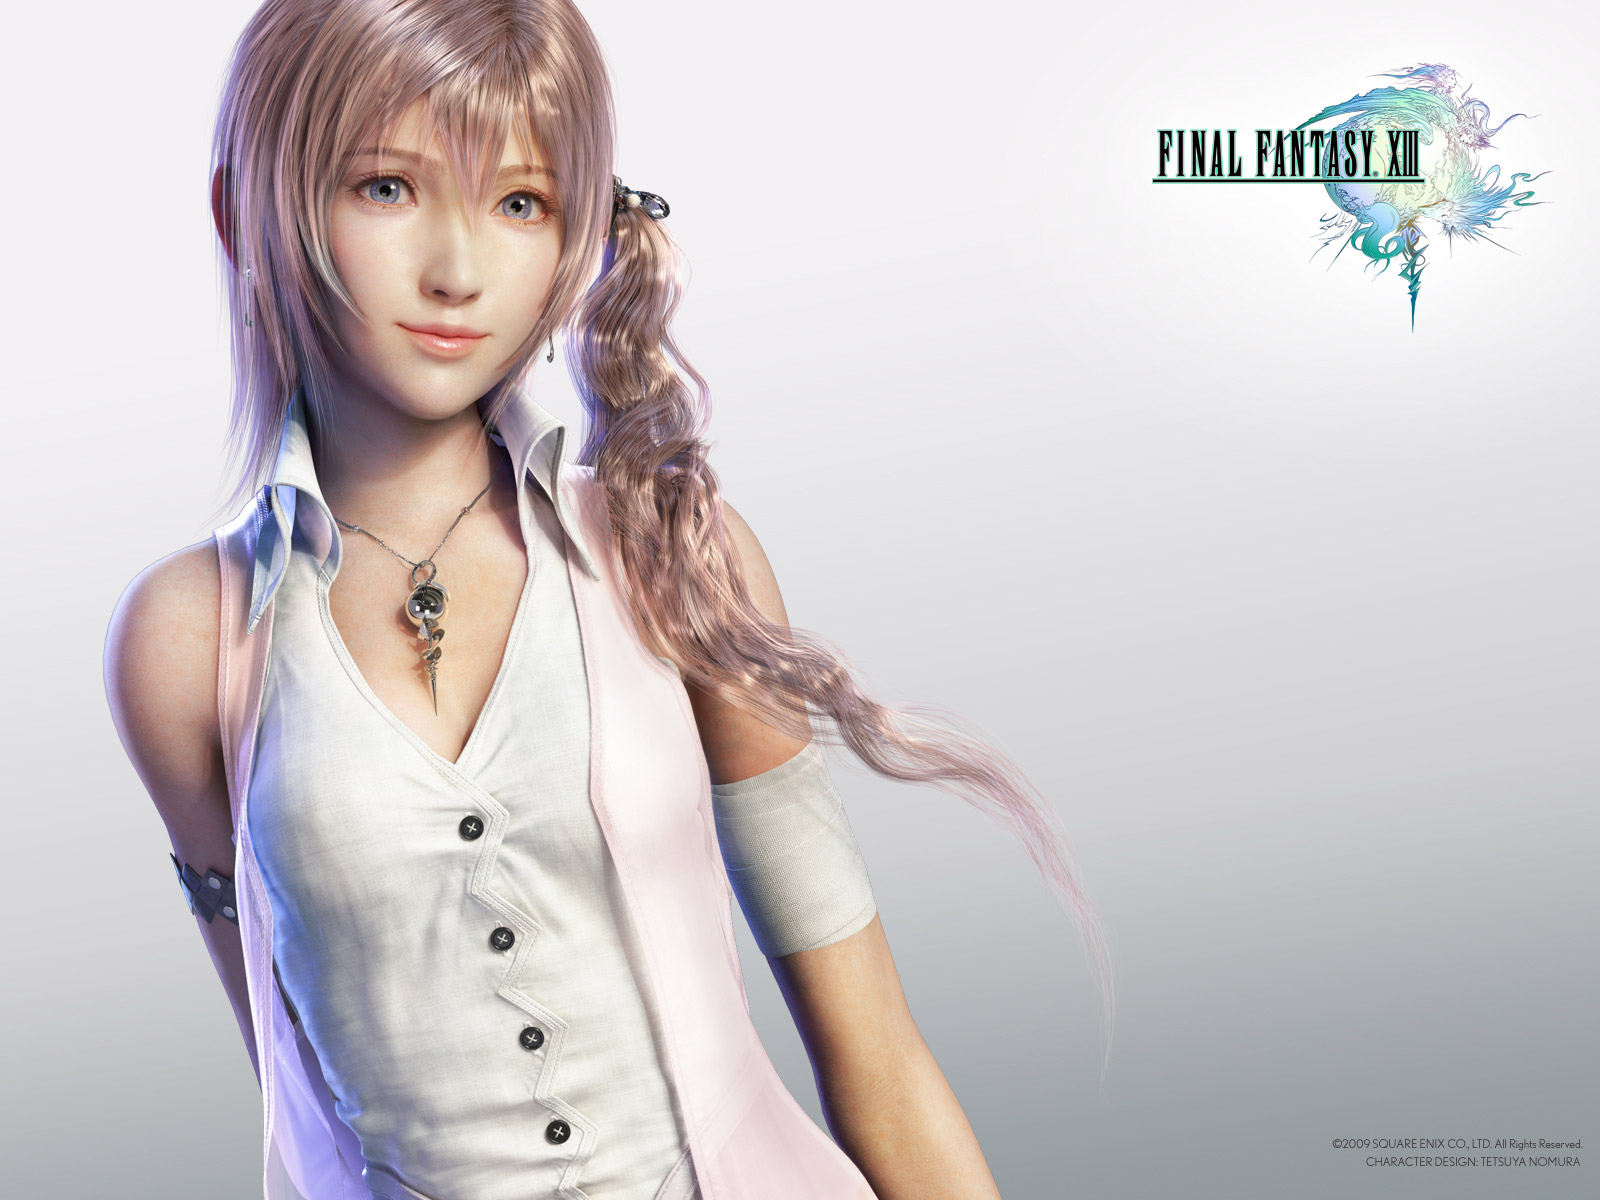 Final Fantasy XIII Game 3 388.21 Kb